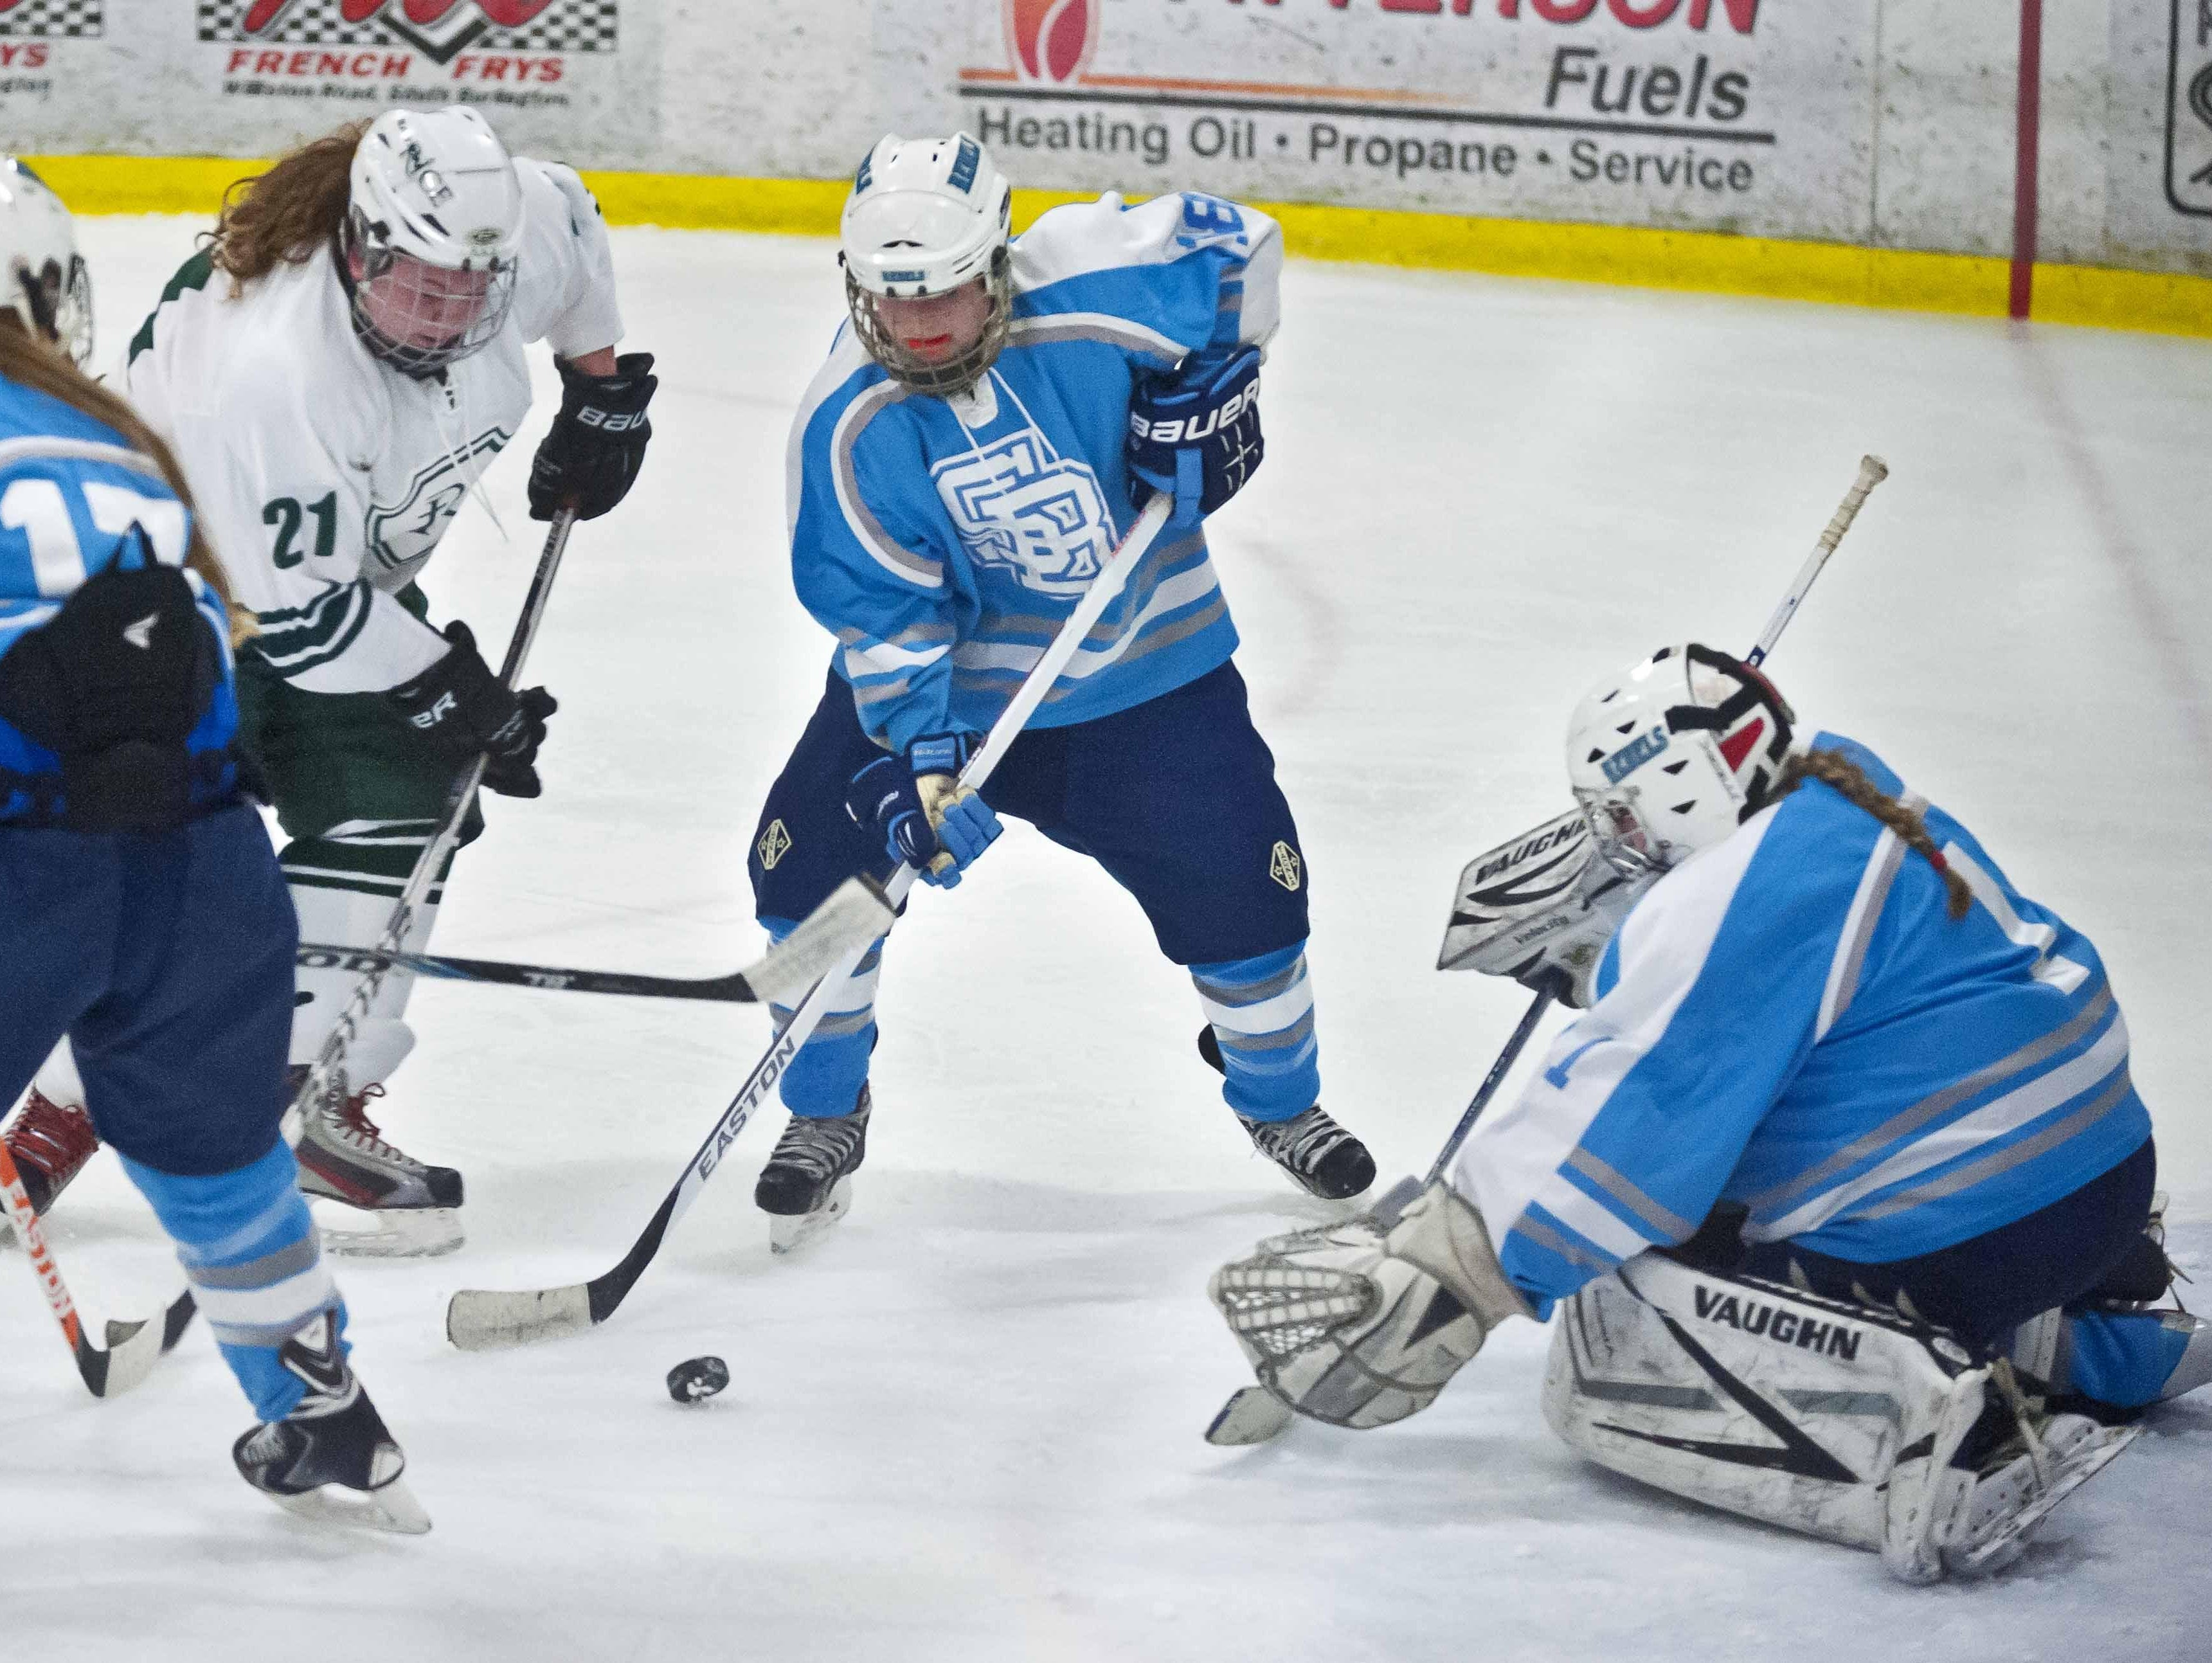 South Burlington's Casey Johnson (center) and Rice Memorial's Dempsey Cronan contest the puck in front of Rebel goalie Erin Church during a game last season.